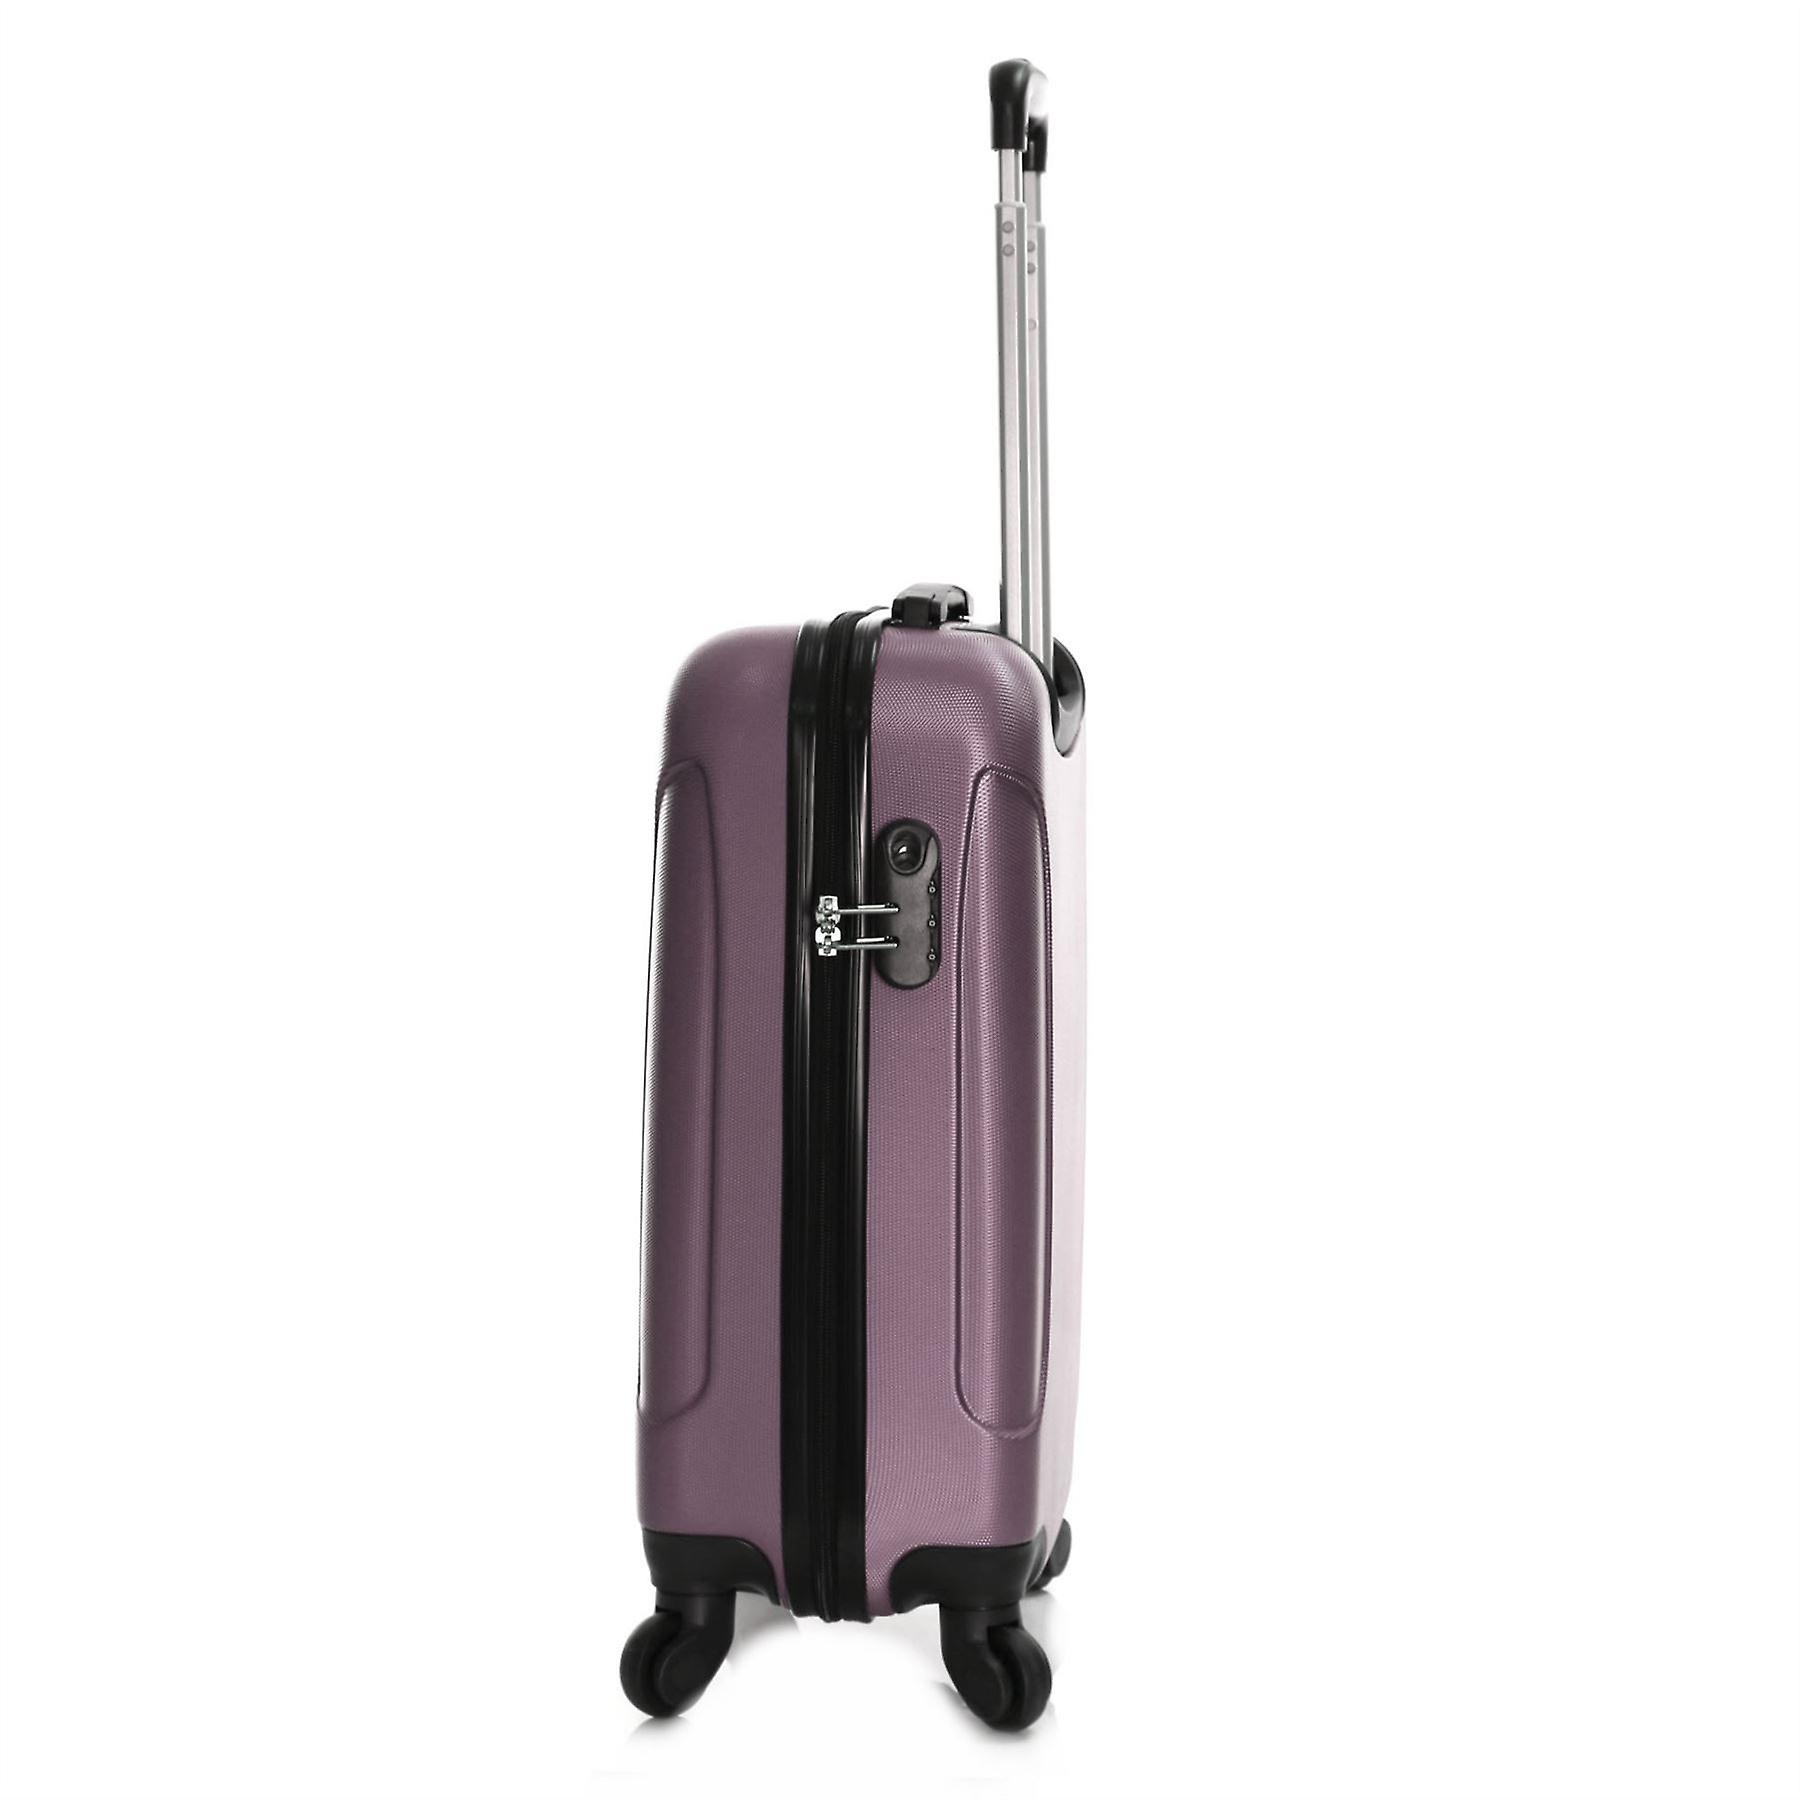 Slimbridge Alameda 55 cm Hard Suitcase, Rose Gold